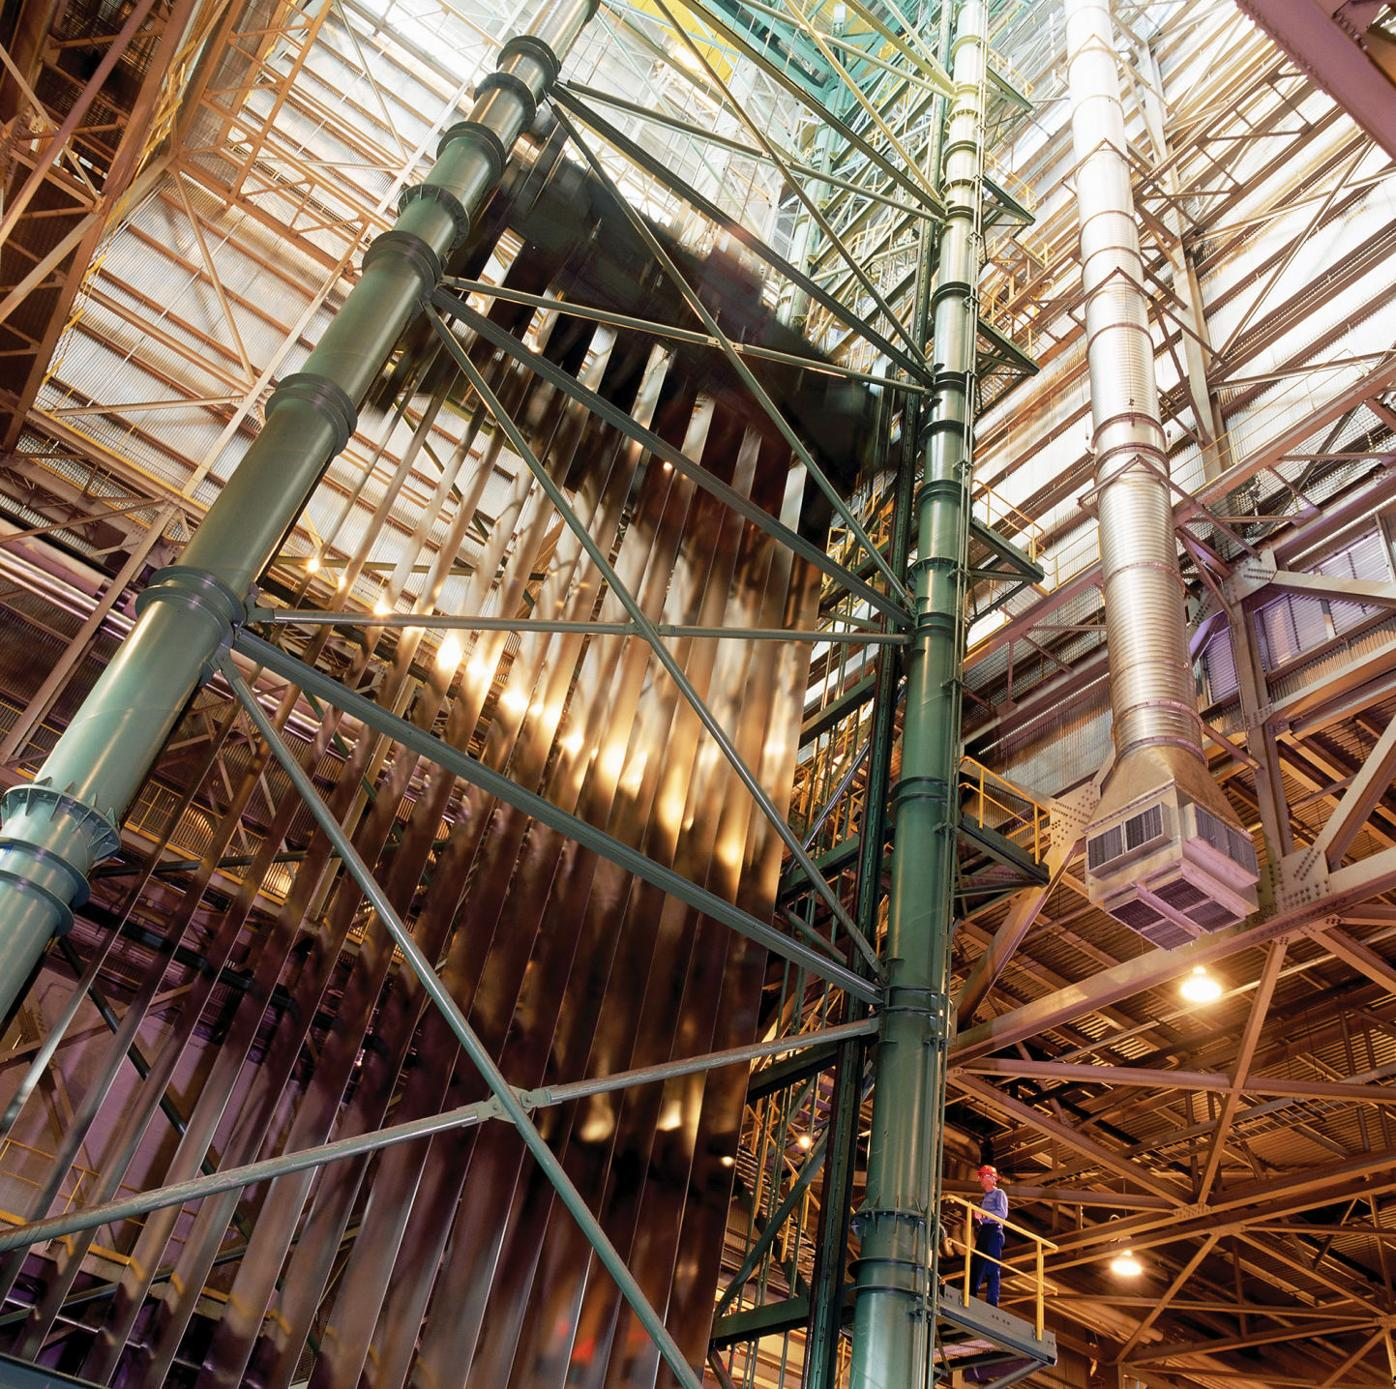 Interior of the Continuous Cold Mill accumulator tower